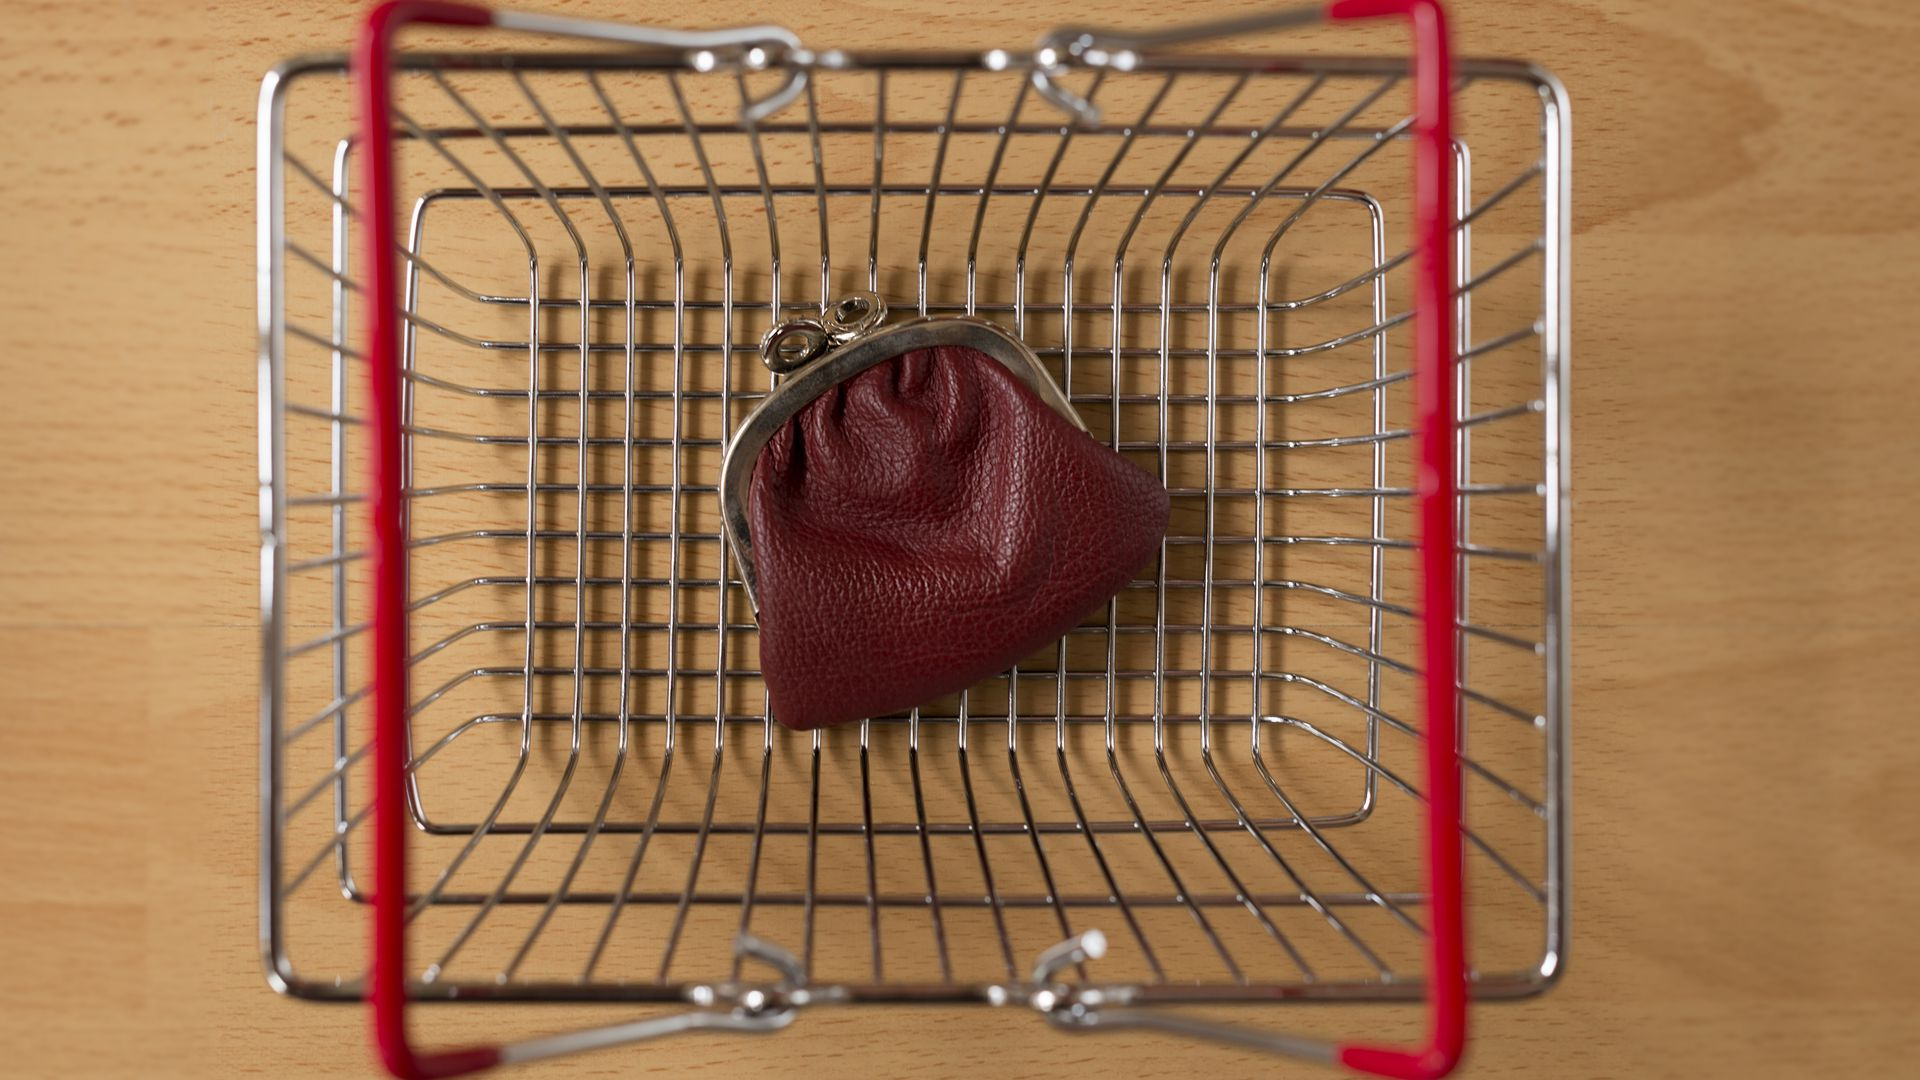 Coin purse in an empty basket